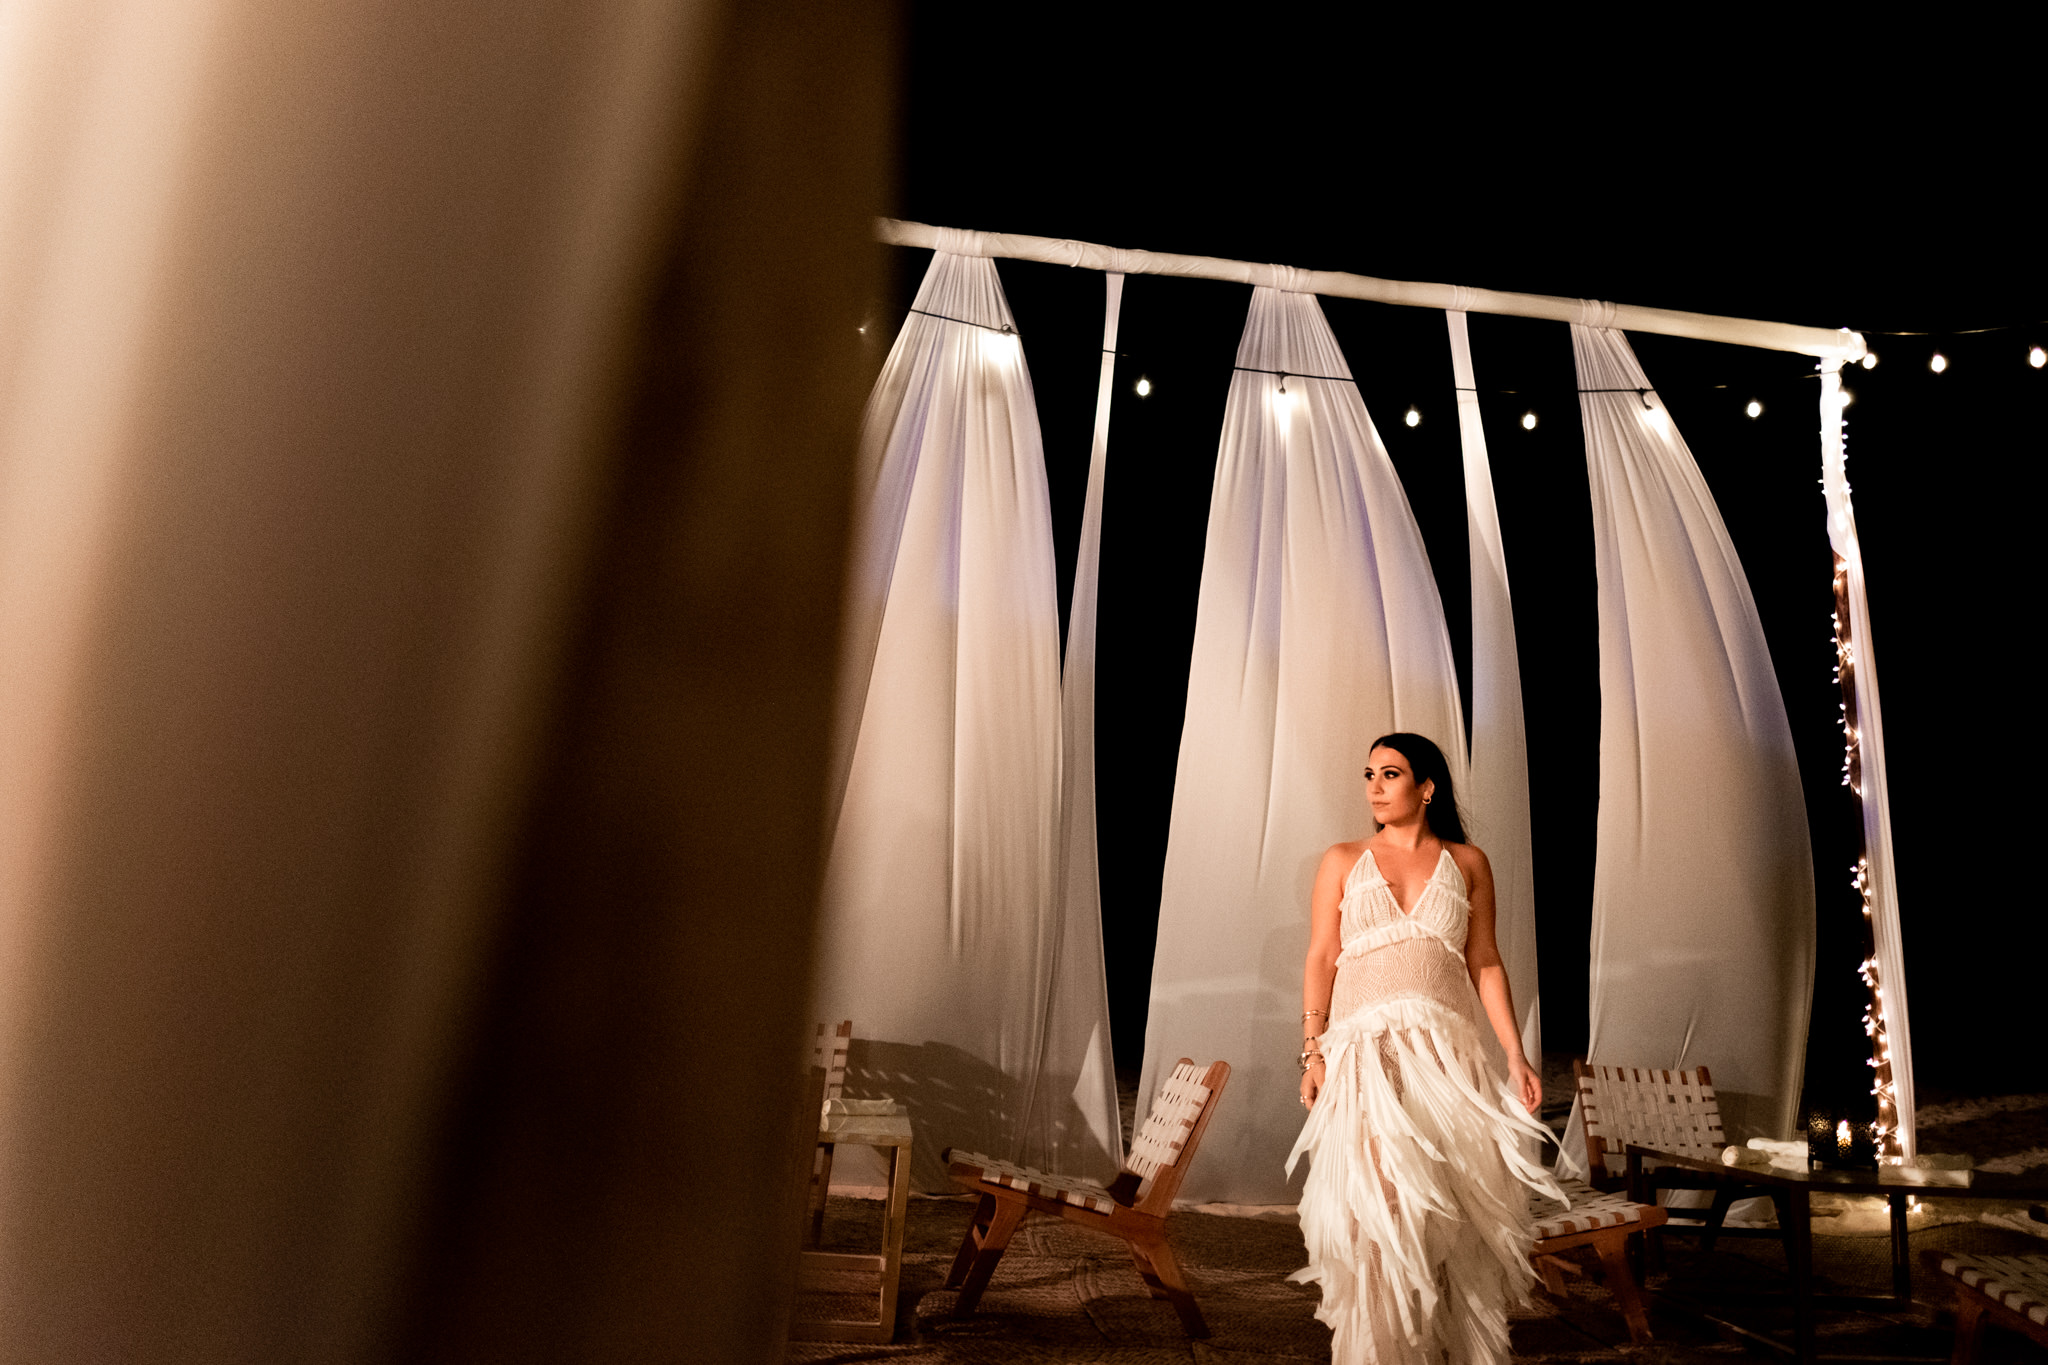 Grand Hyatt Playa del Carmen Resort Wedding Photographer